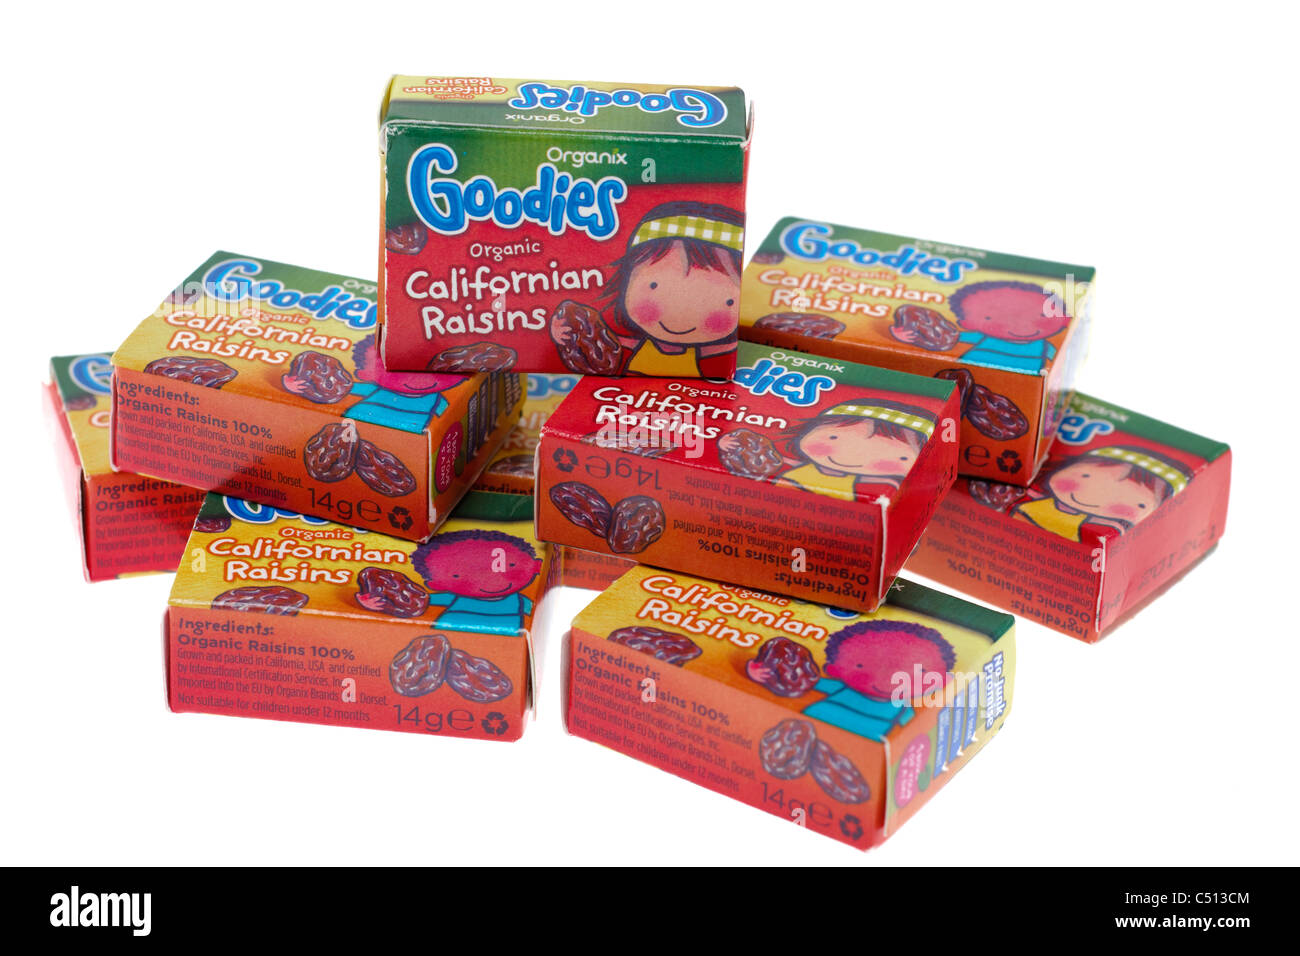 Several 14 gram boxed Organix goodies good for kids healthy treats organic Californian Raisins - Stock Image